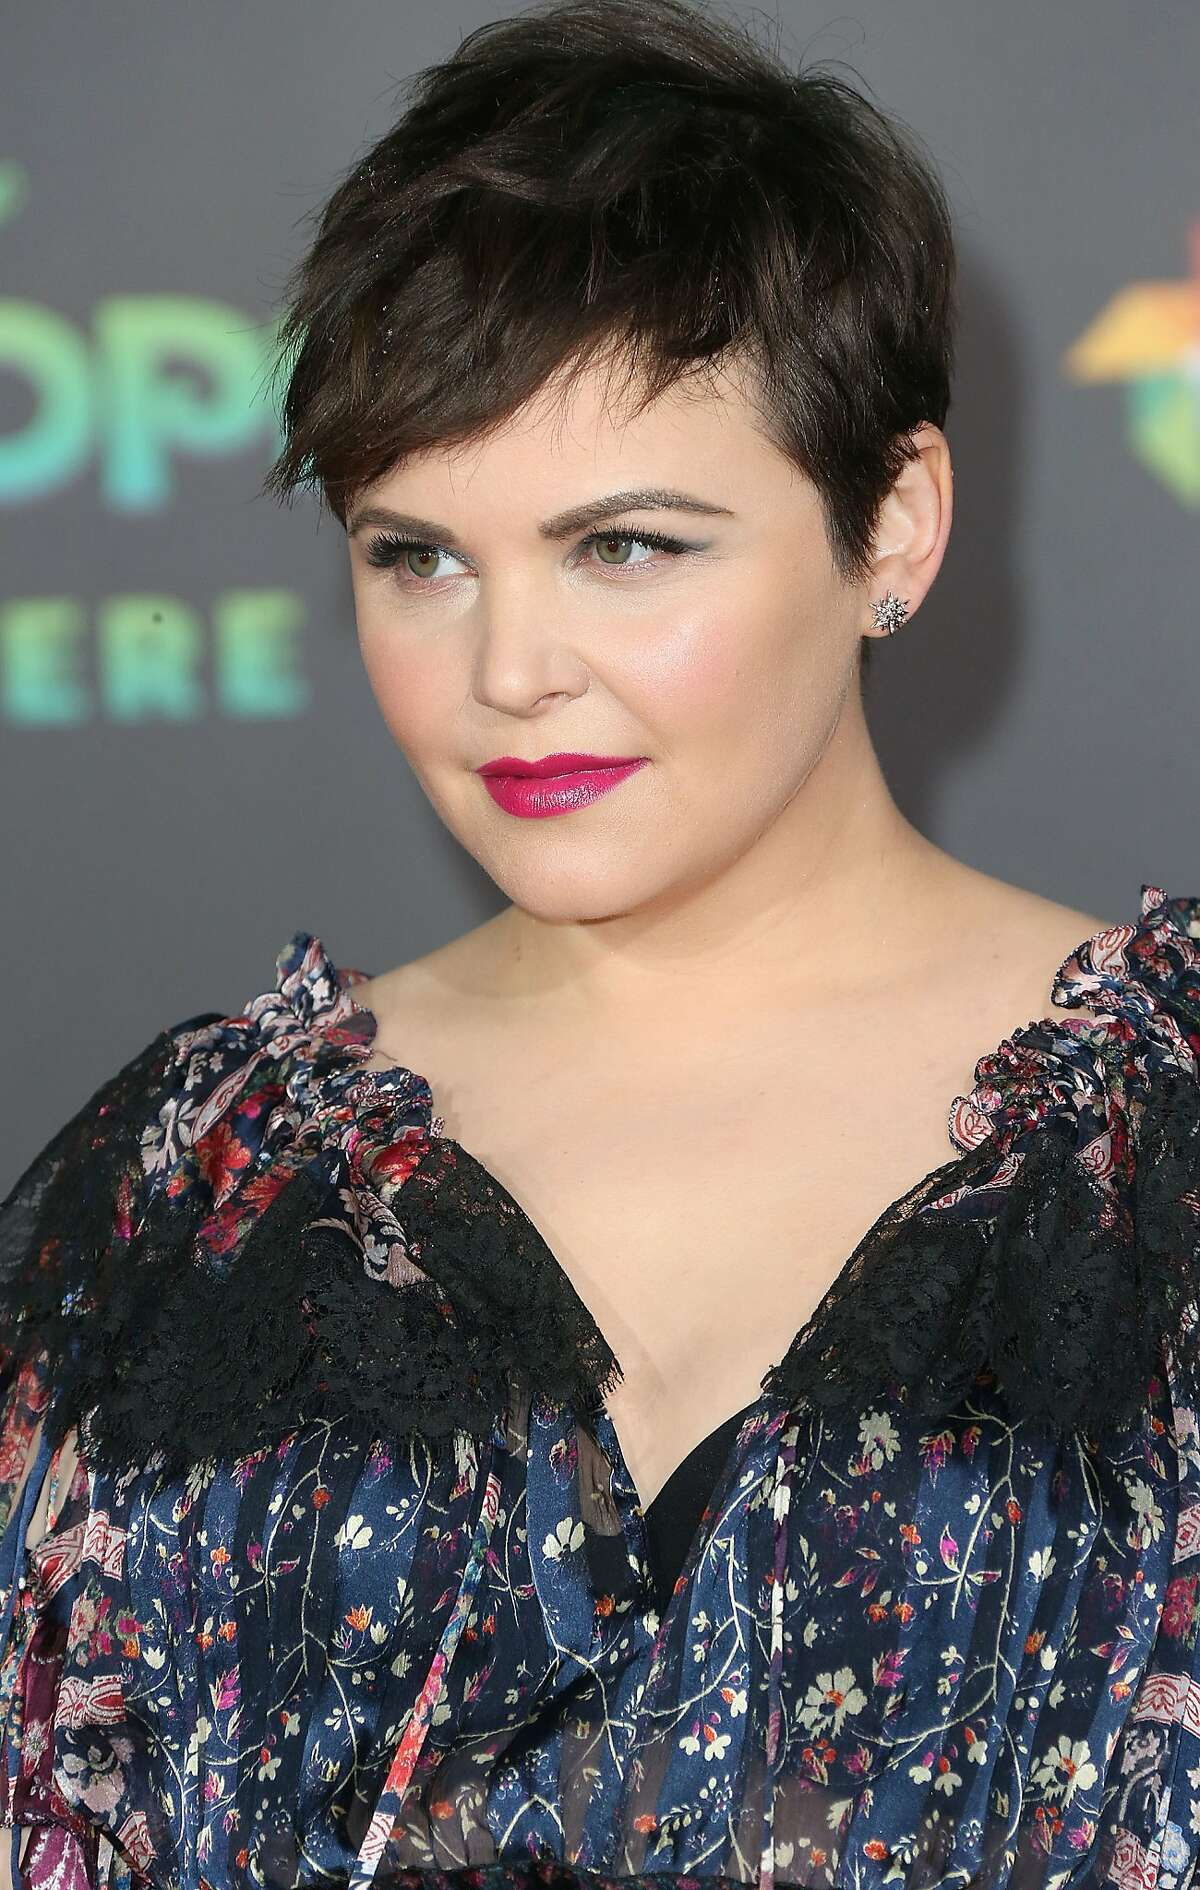 """HOLLYWOOD, CA - FEBRUARY 17: Actress Ginnifer Goodwin attends the Premiere of Walt Disney Animation Studios' """"Zootopia"""" at the El Capitan Theatre on February 17, 2016 in Hollywood, California. (Photo by Frederick M. Brown/Getty Images)"""